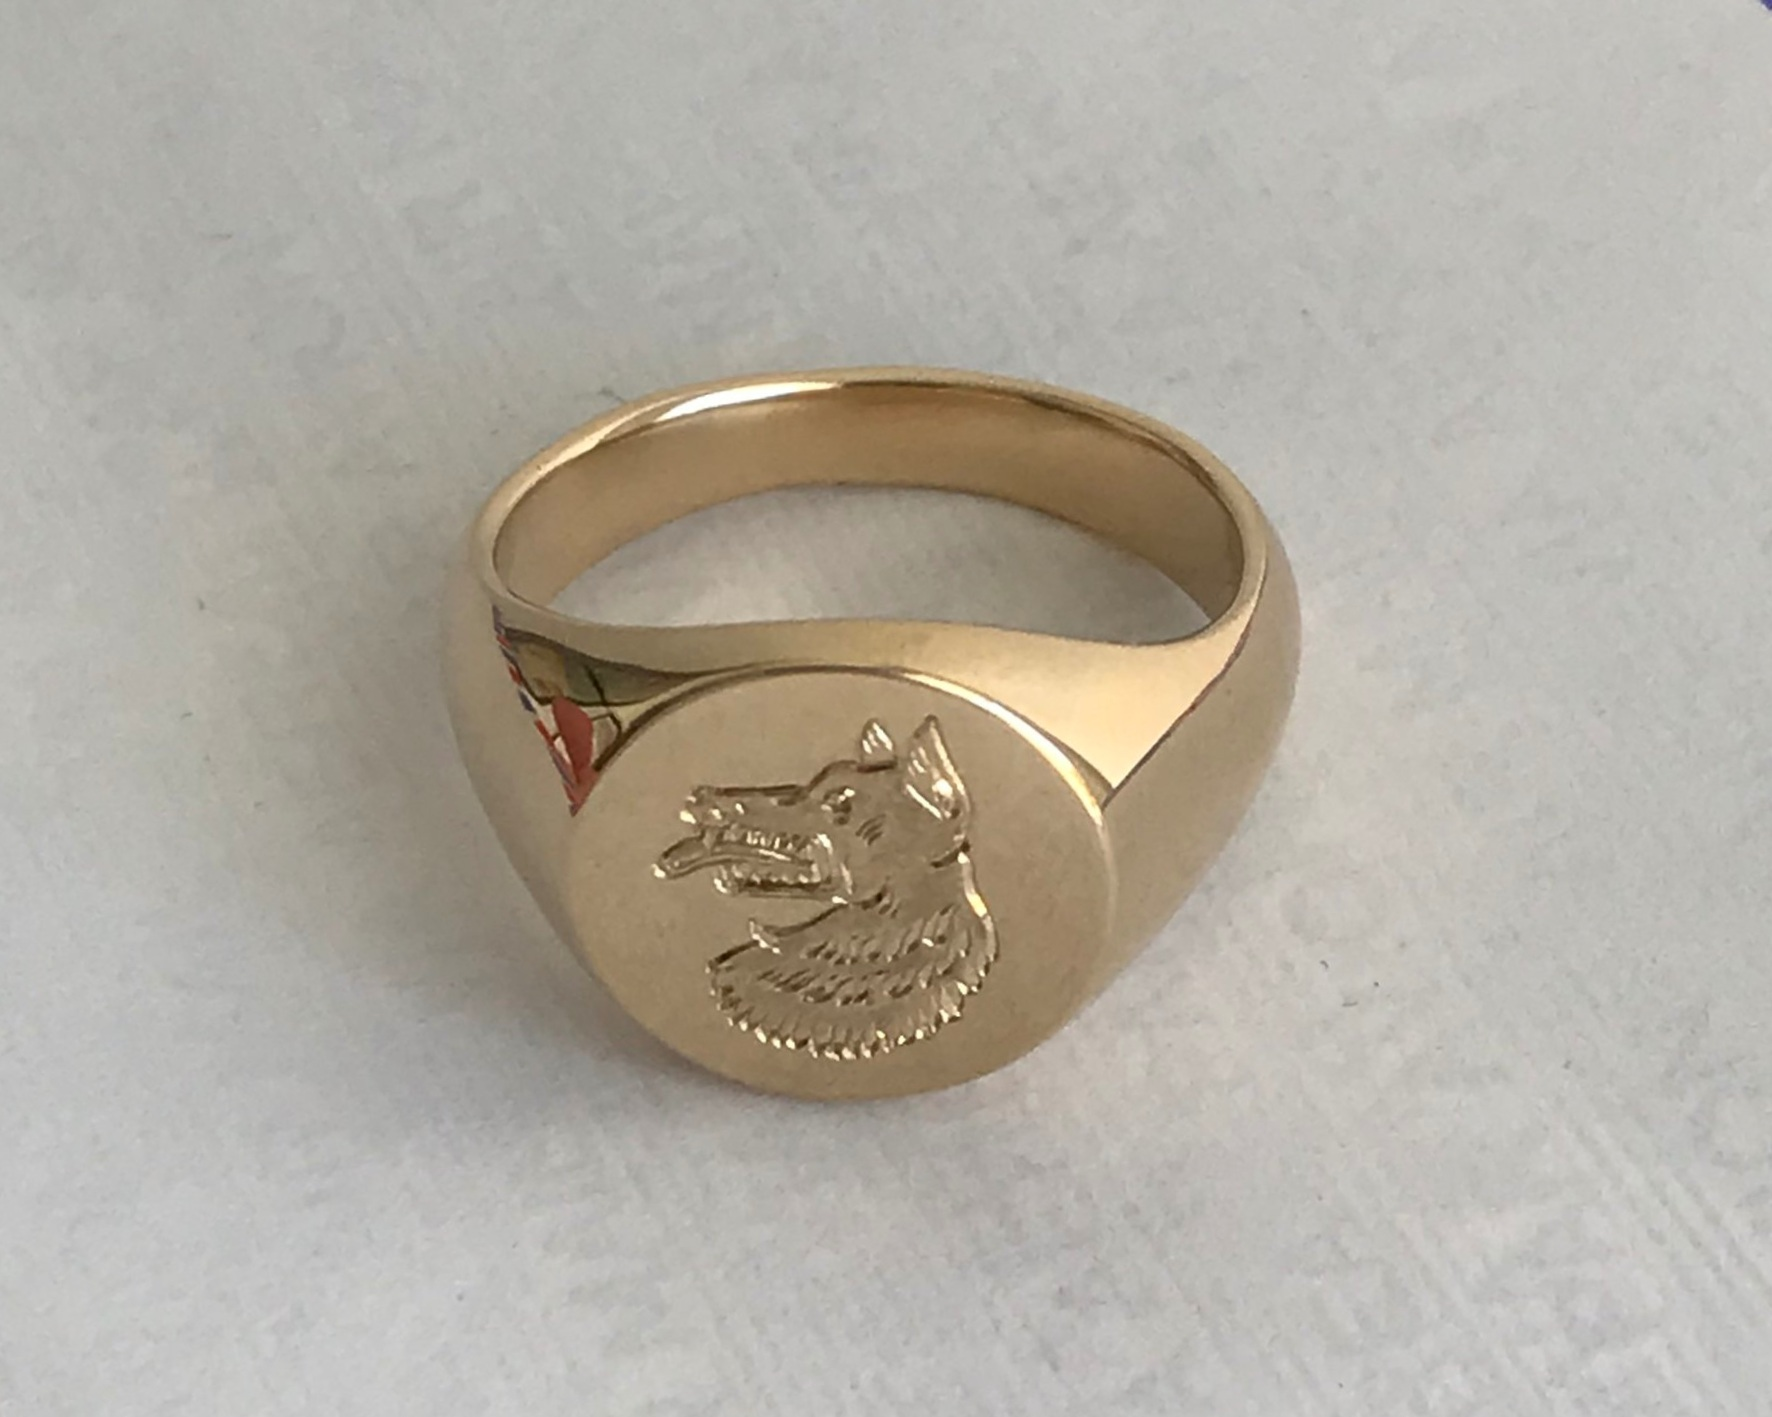 WOLFE Signet Ring:  hand-carved, hand-engraved, 14k yellow gold.